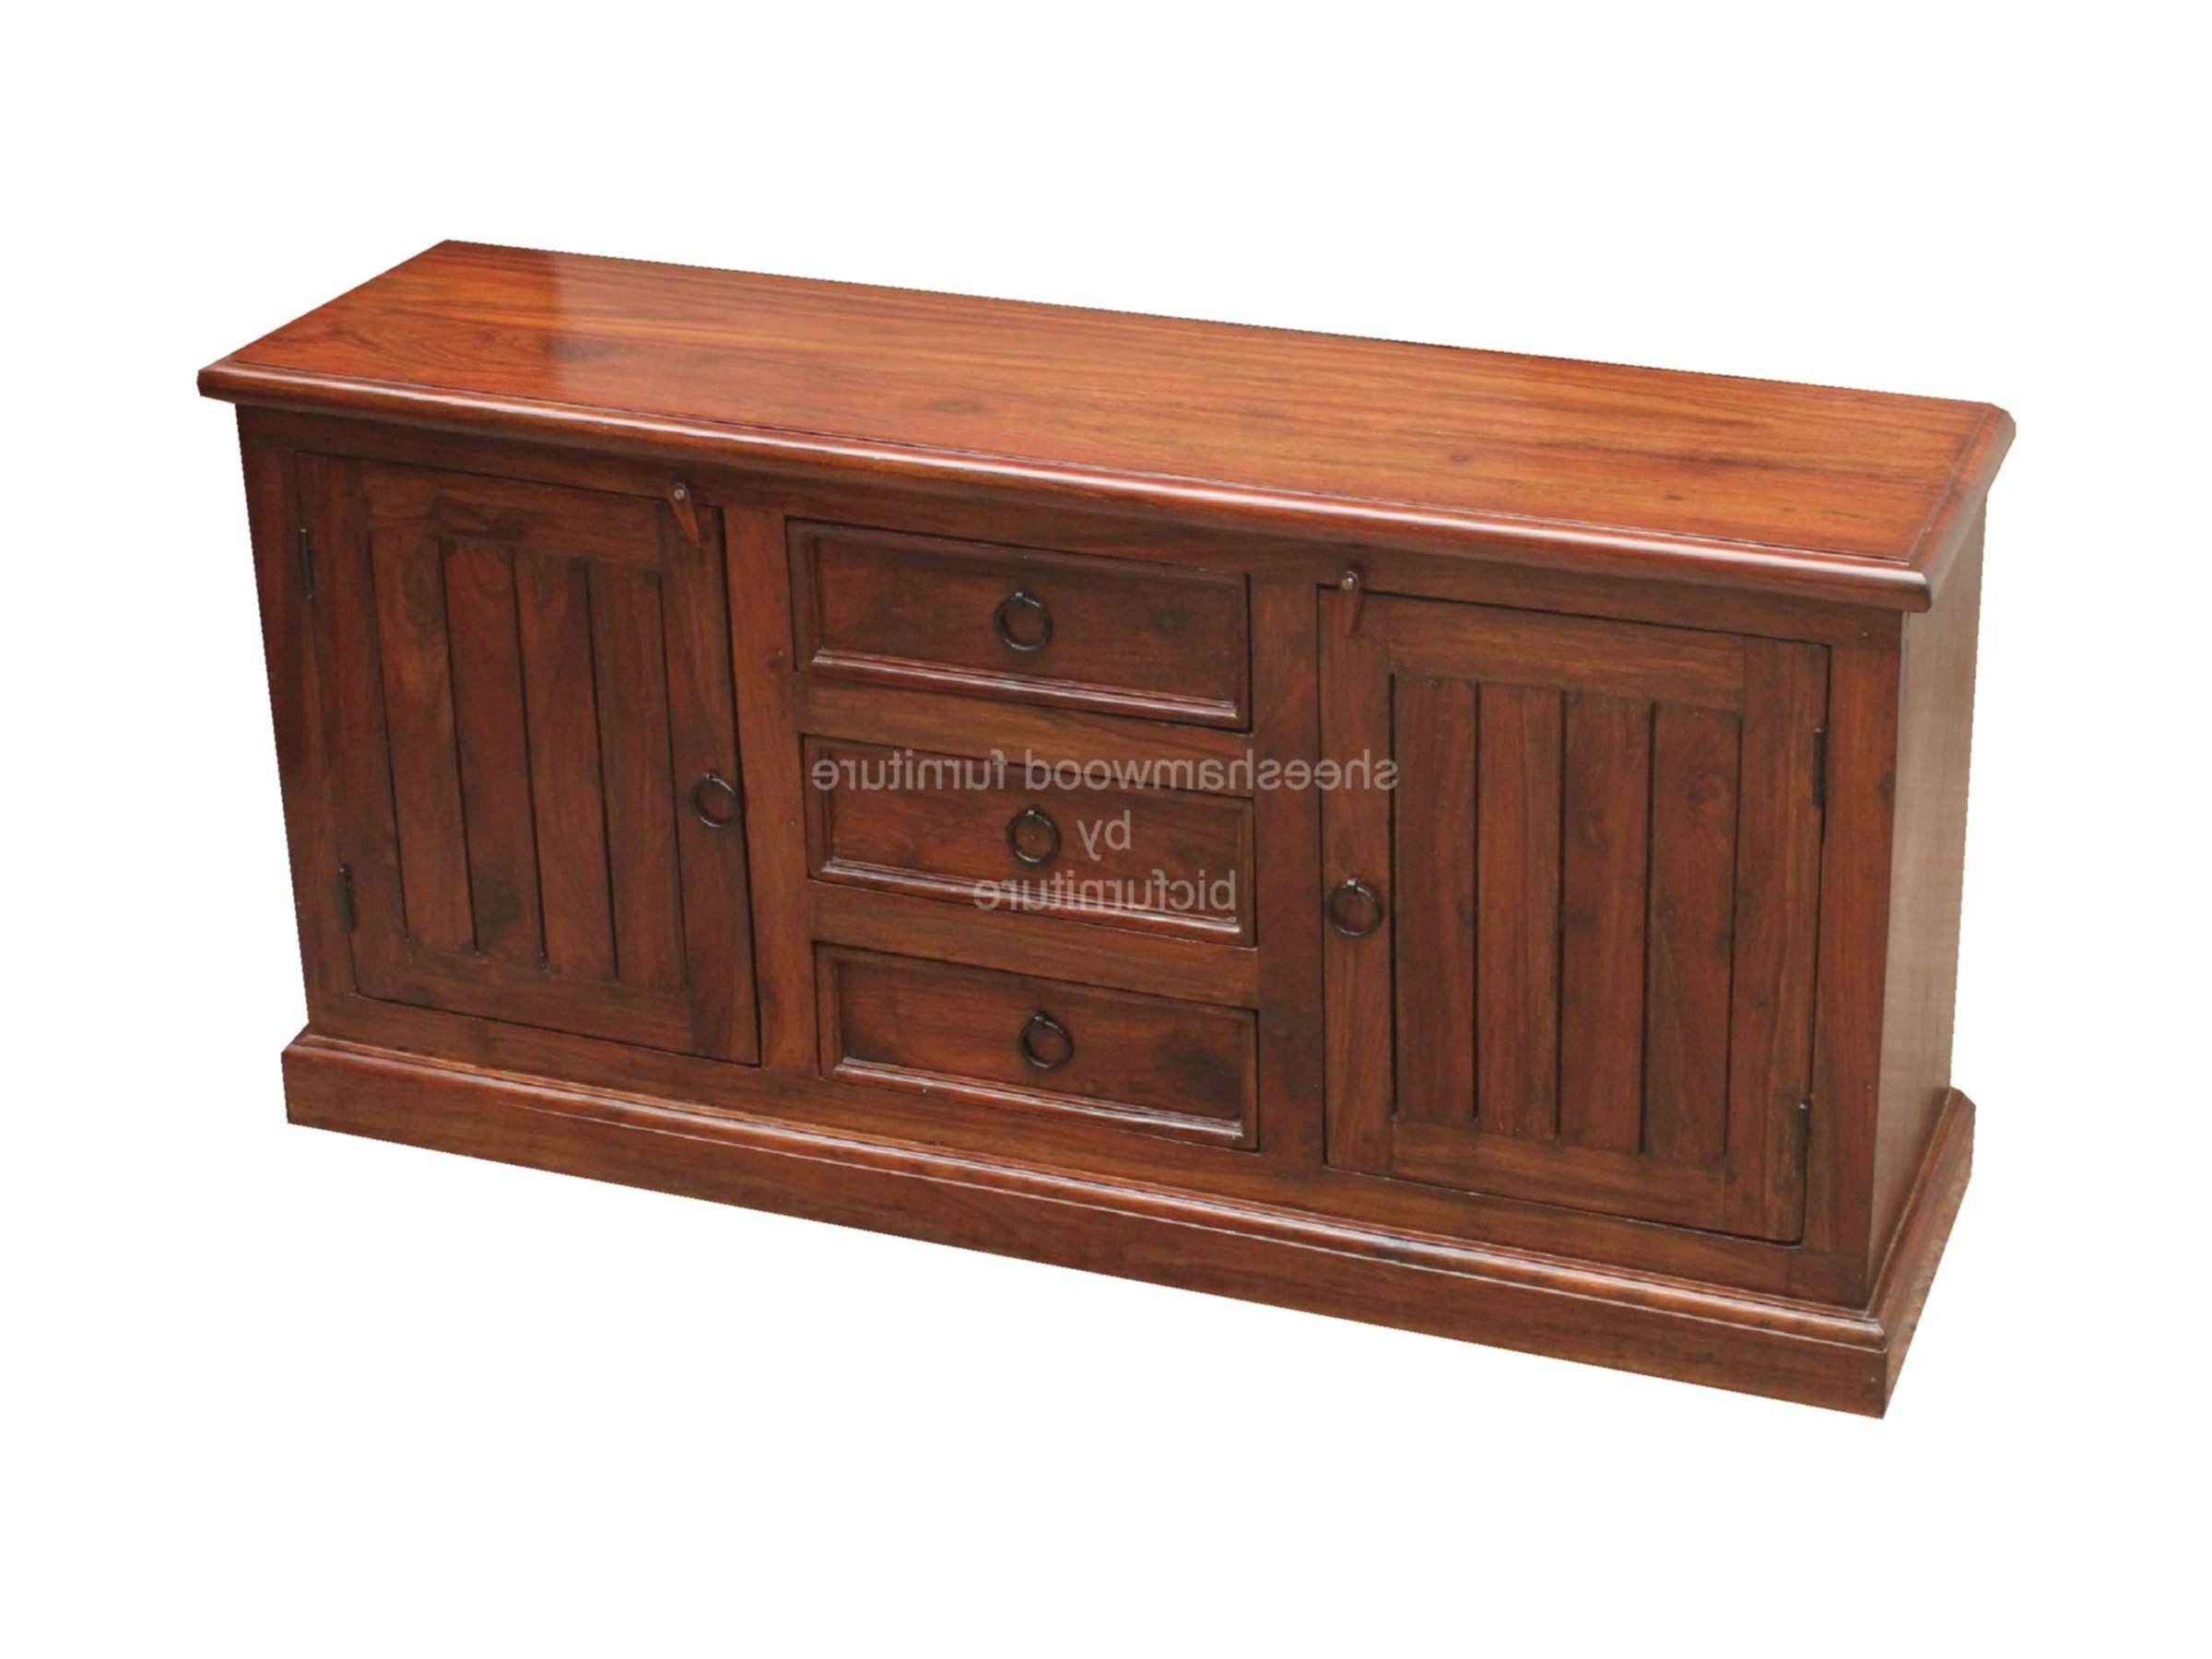 Sb 61 Small Sheesham Wood Sideboard Details | Bic Furniture India Intended For Wooden Sideboards (View 10 of 20)